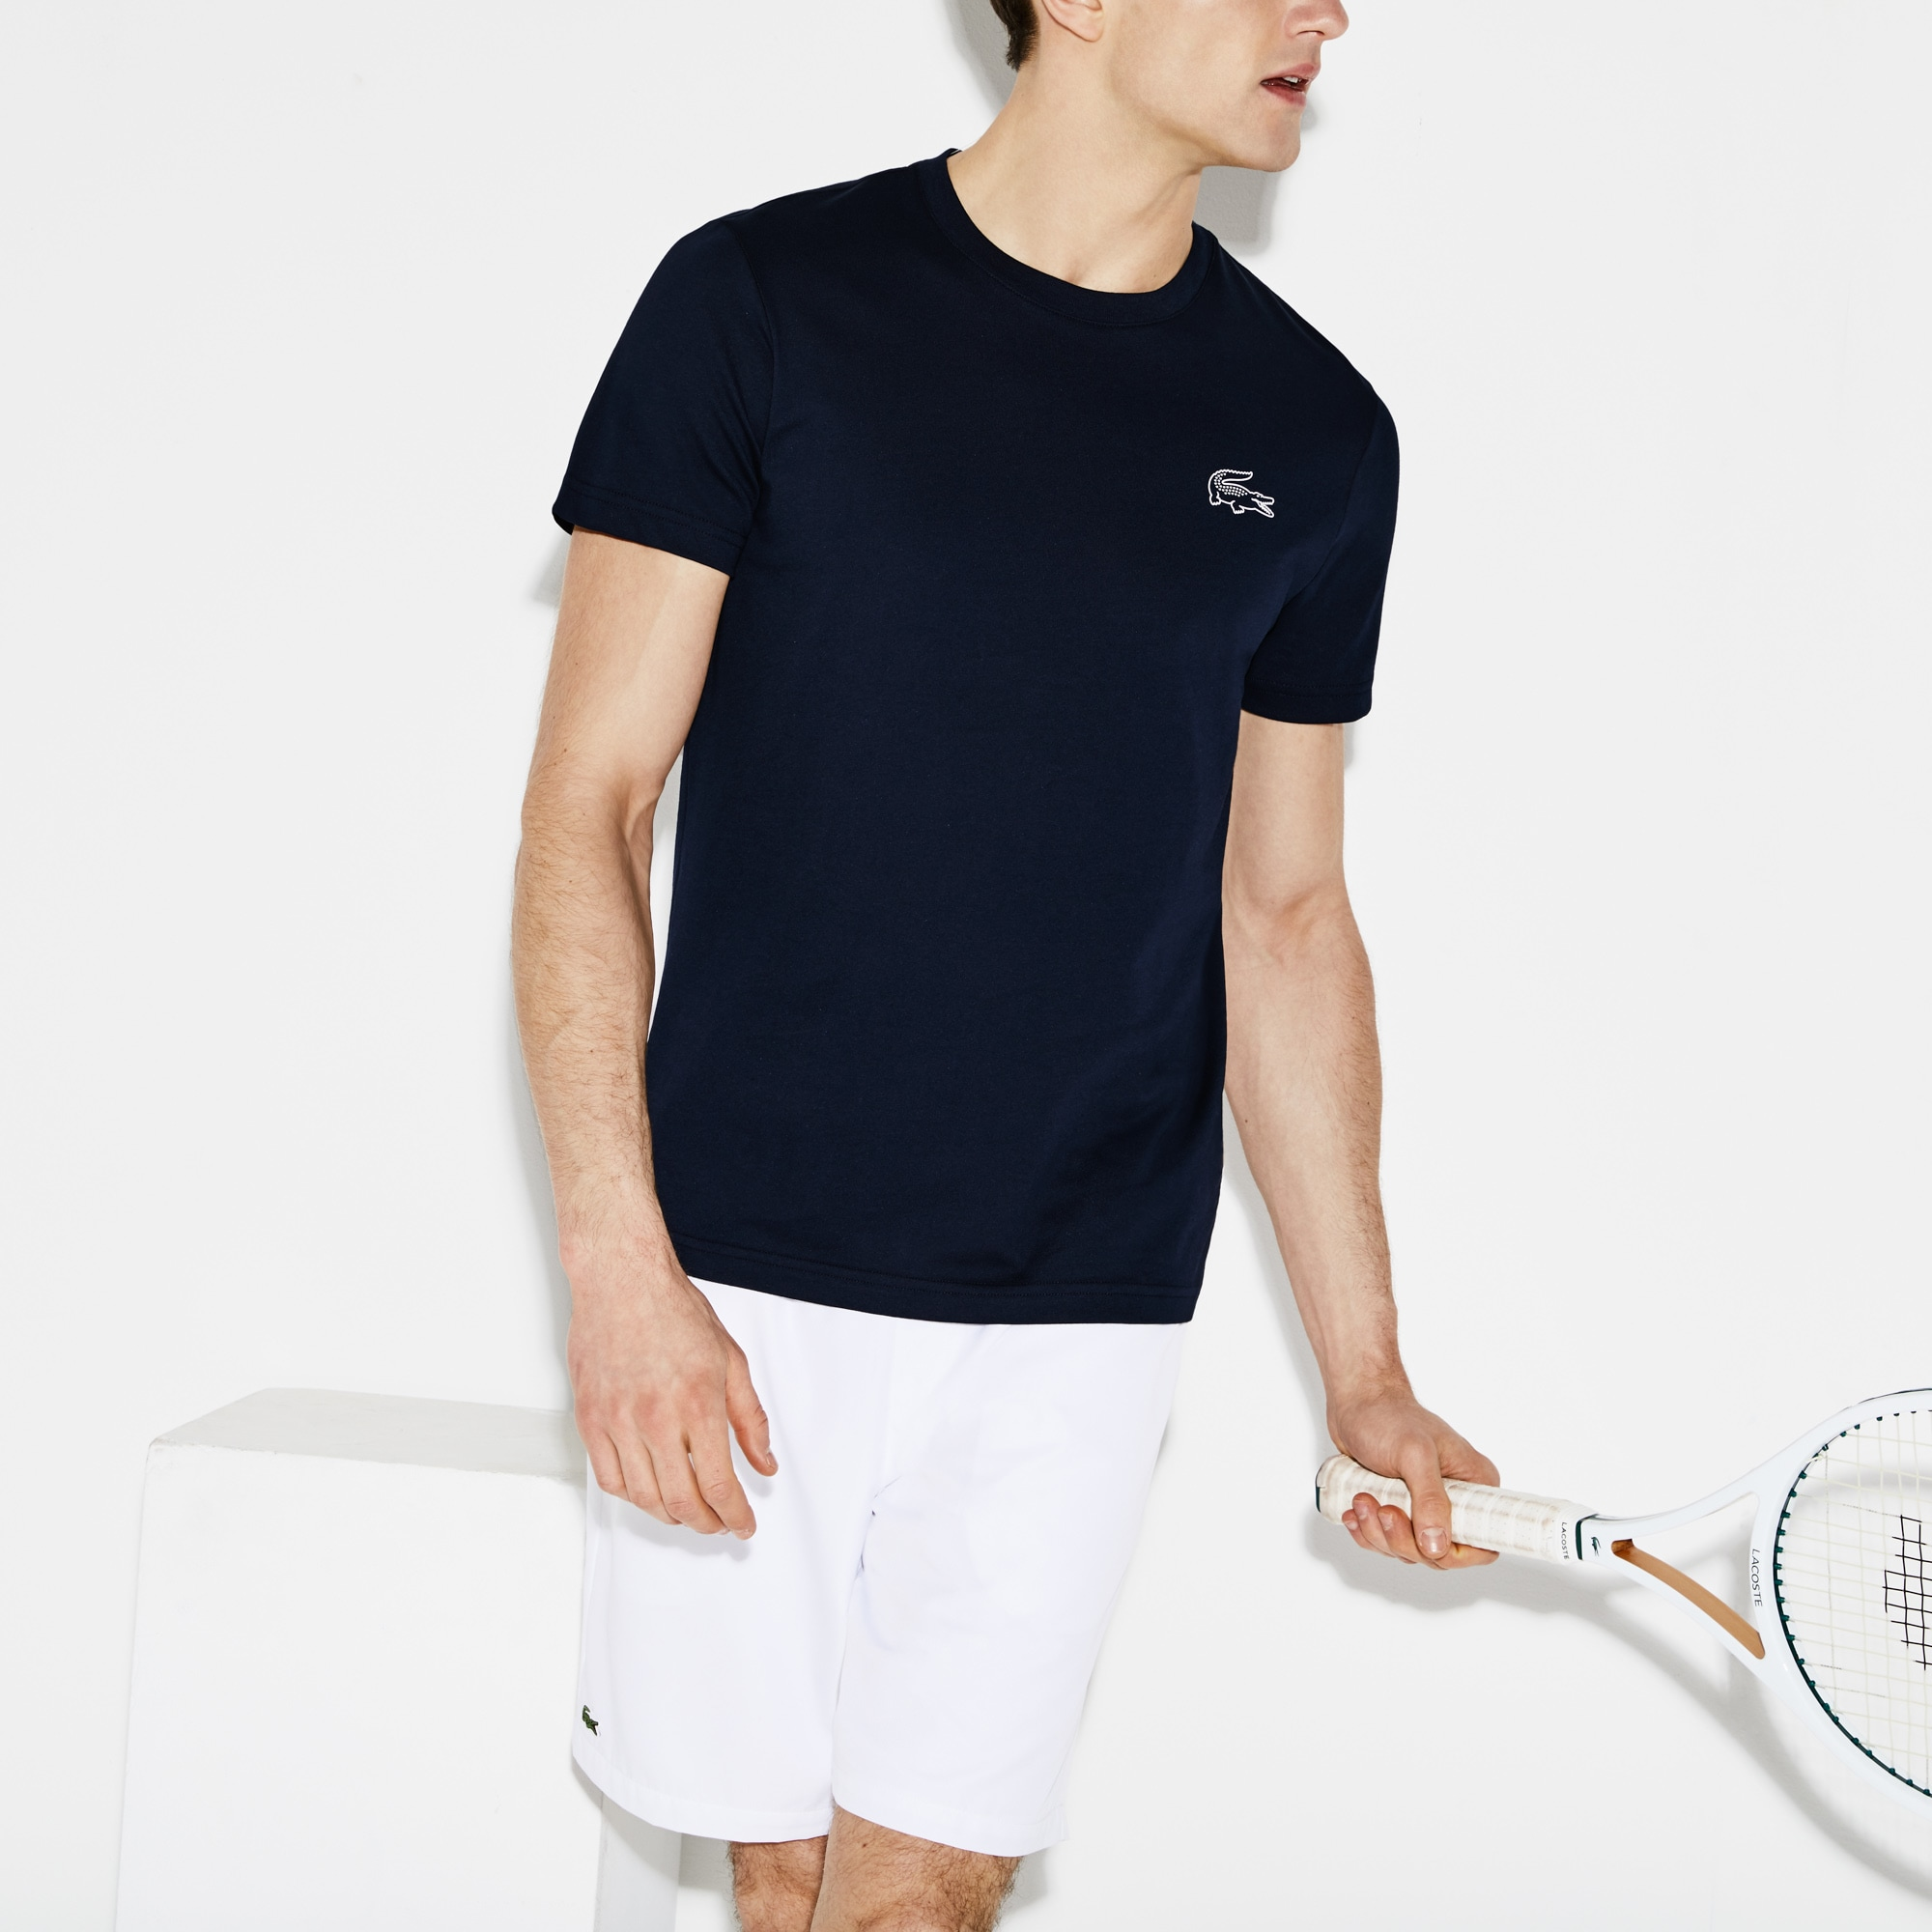 Men's SPORT Miami Open Design Tech Jersey Tennis T-shirt